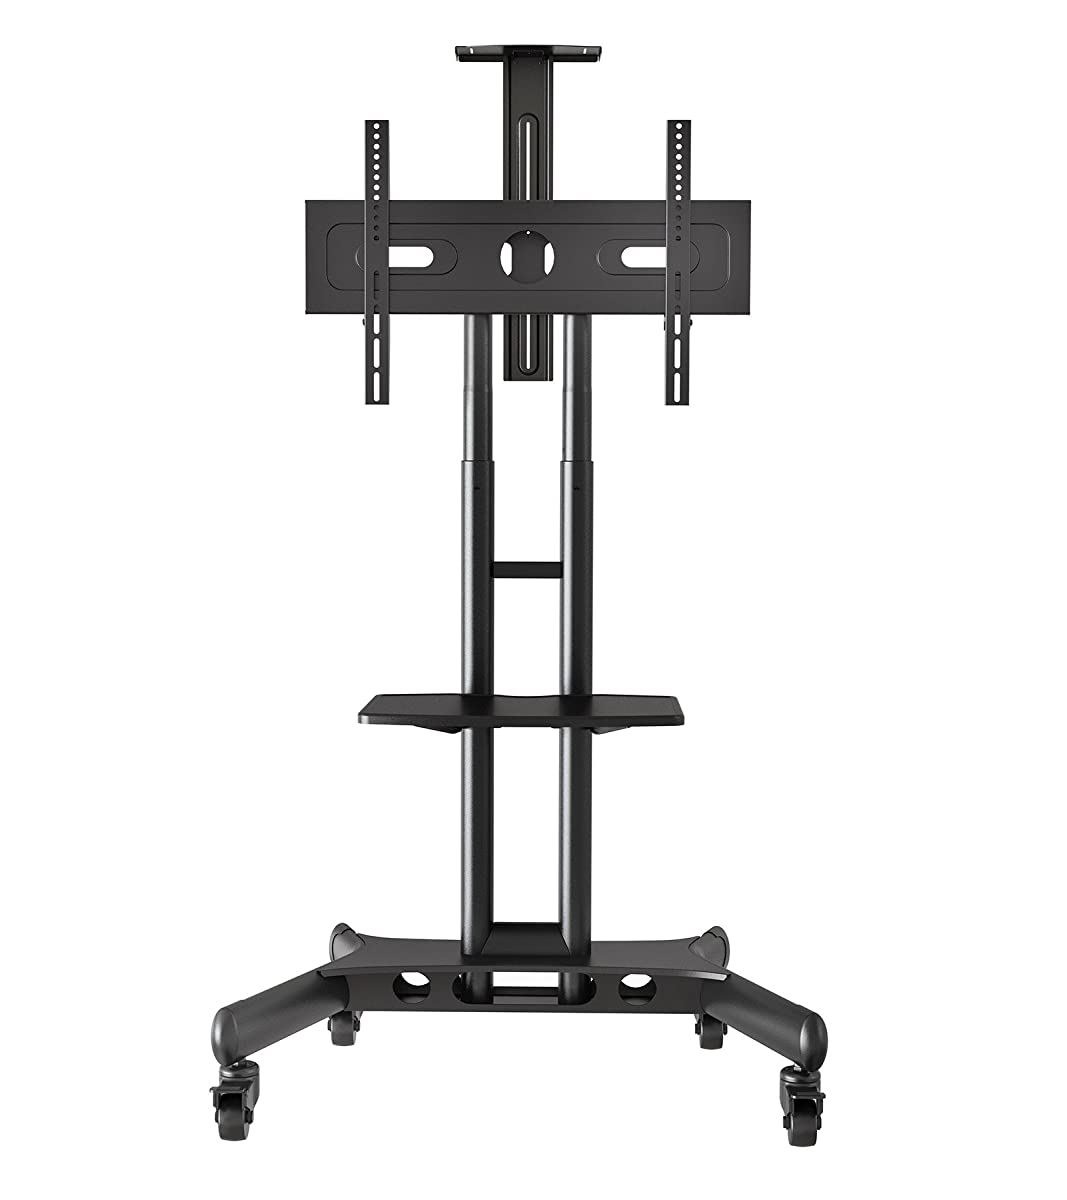 Mount Factory Rolling TV Cart Mobile TV Stand for 40-65 inch Flat Screen, LED, LCD, OLED, Plasma, Curved TVs - Universal Mount with Wheels